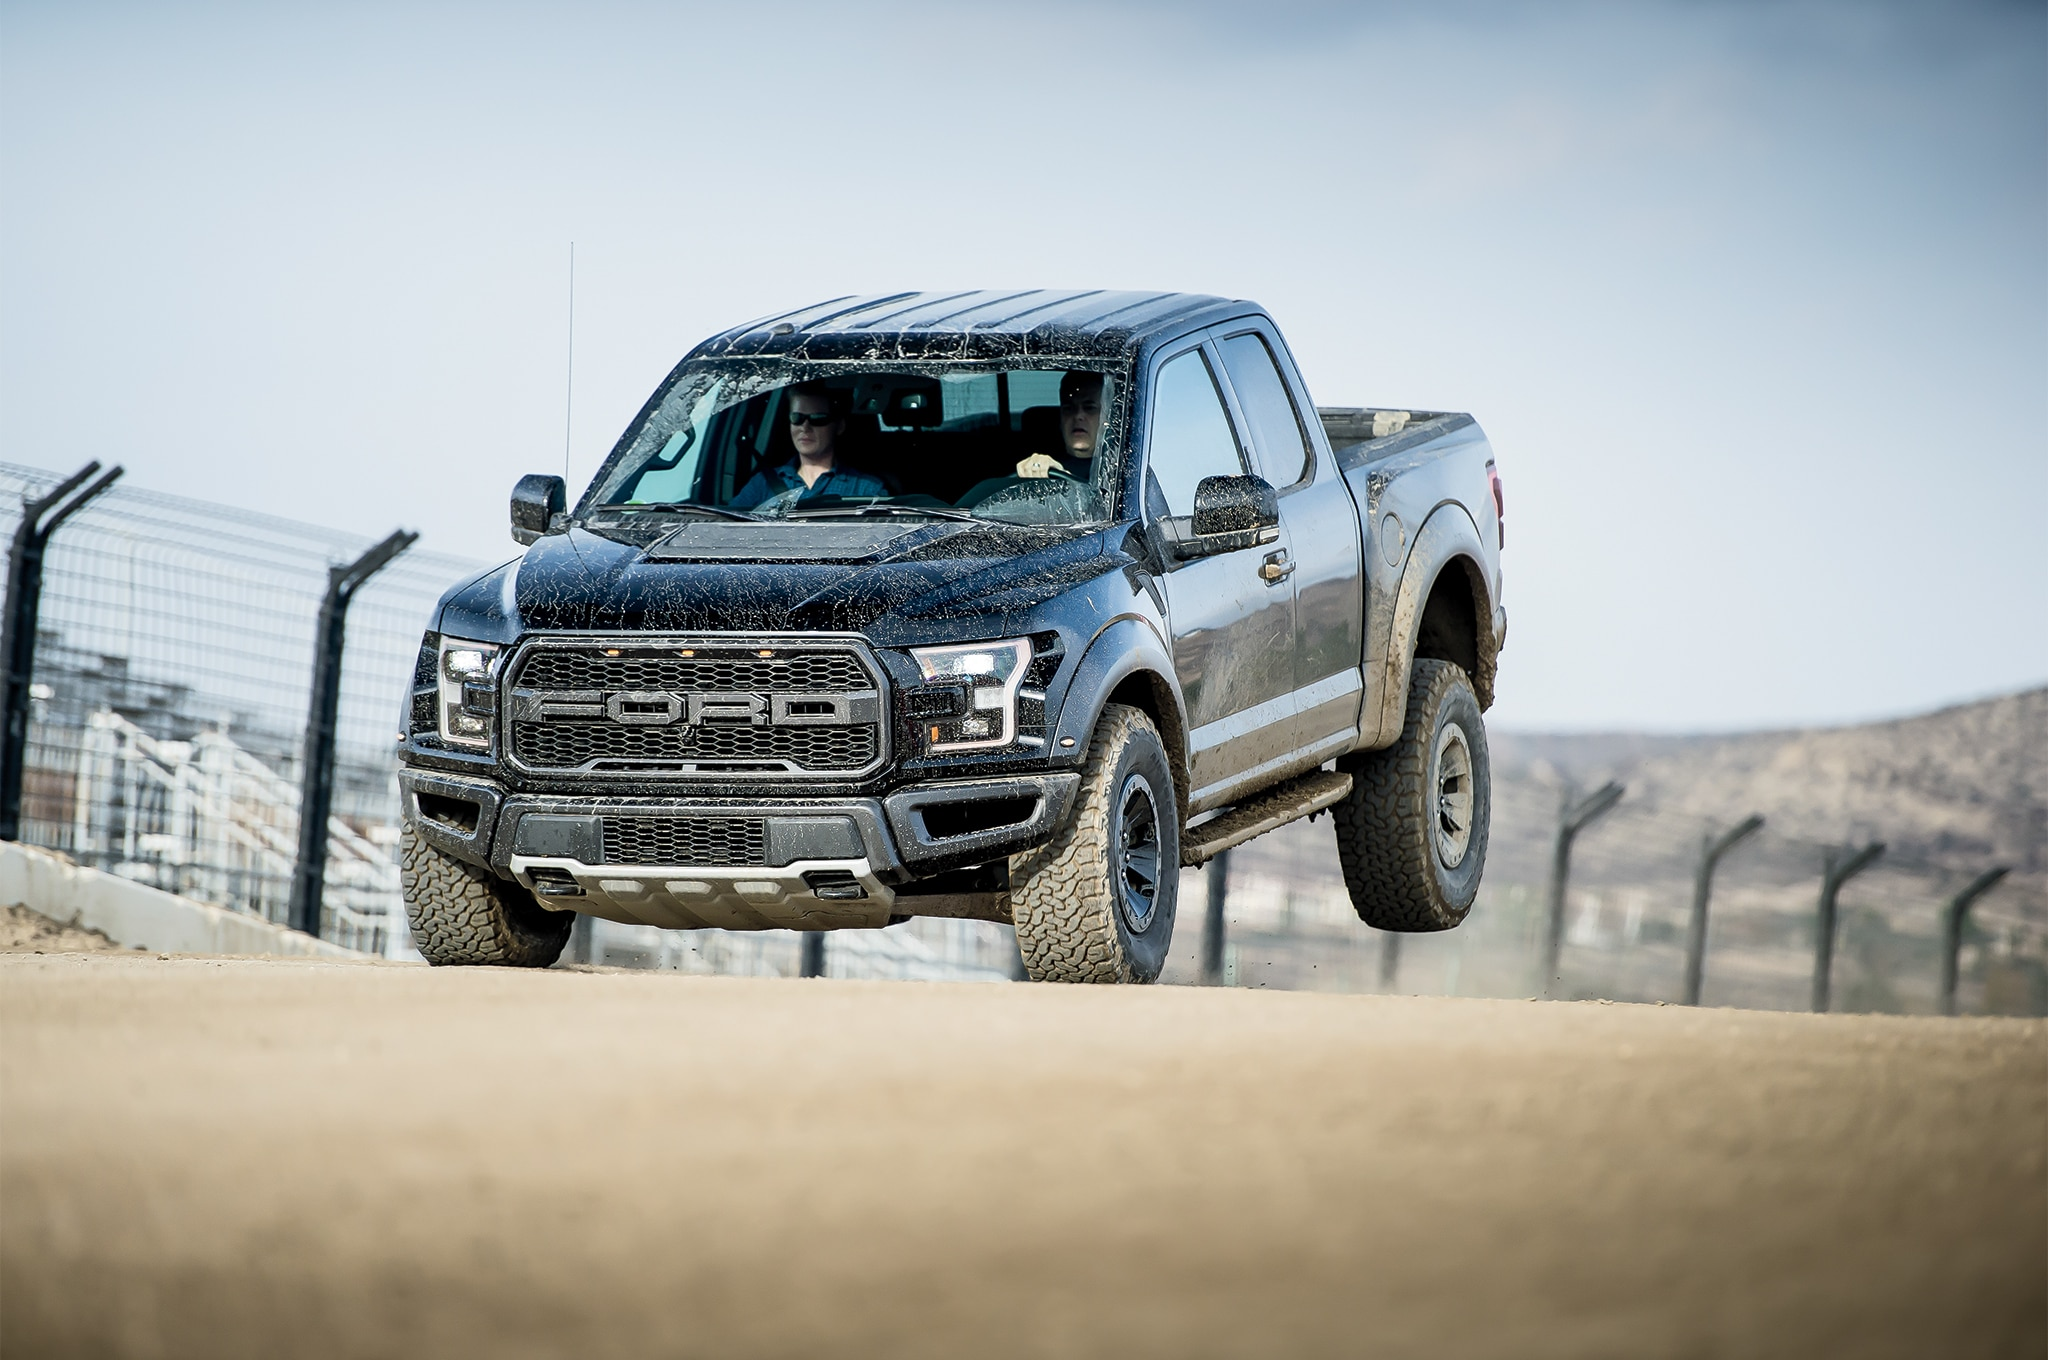 Getting to Know the 2017 Ford Raptor with the Man Who Knows It